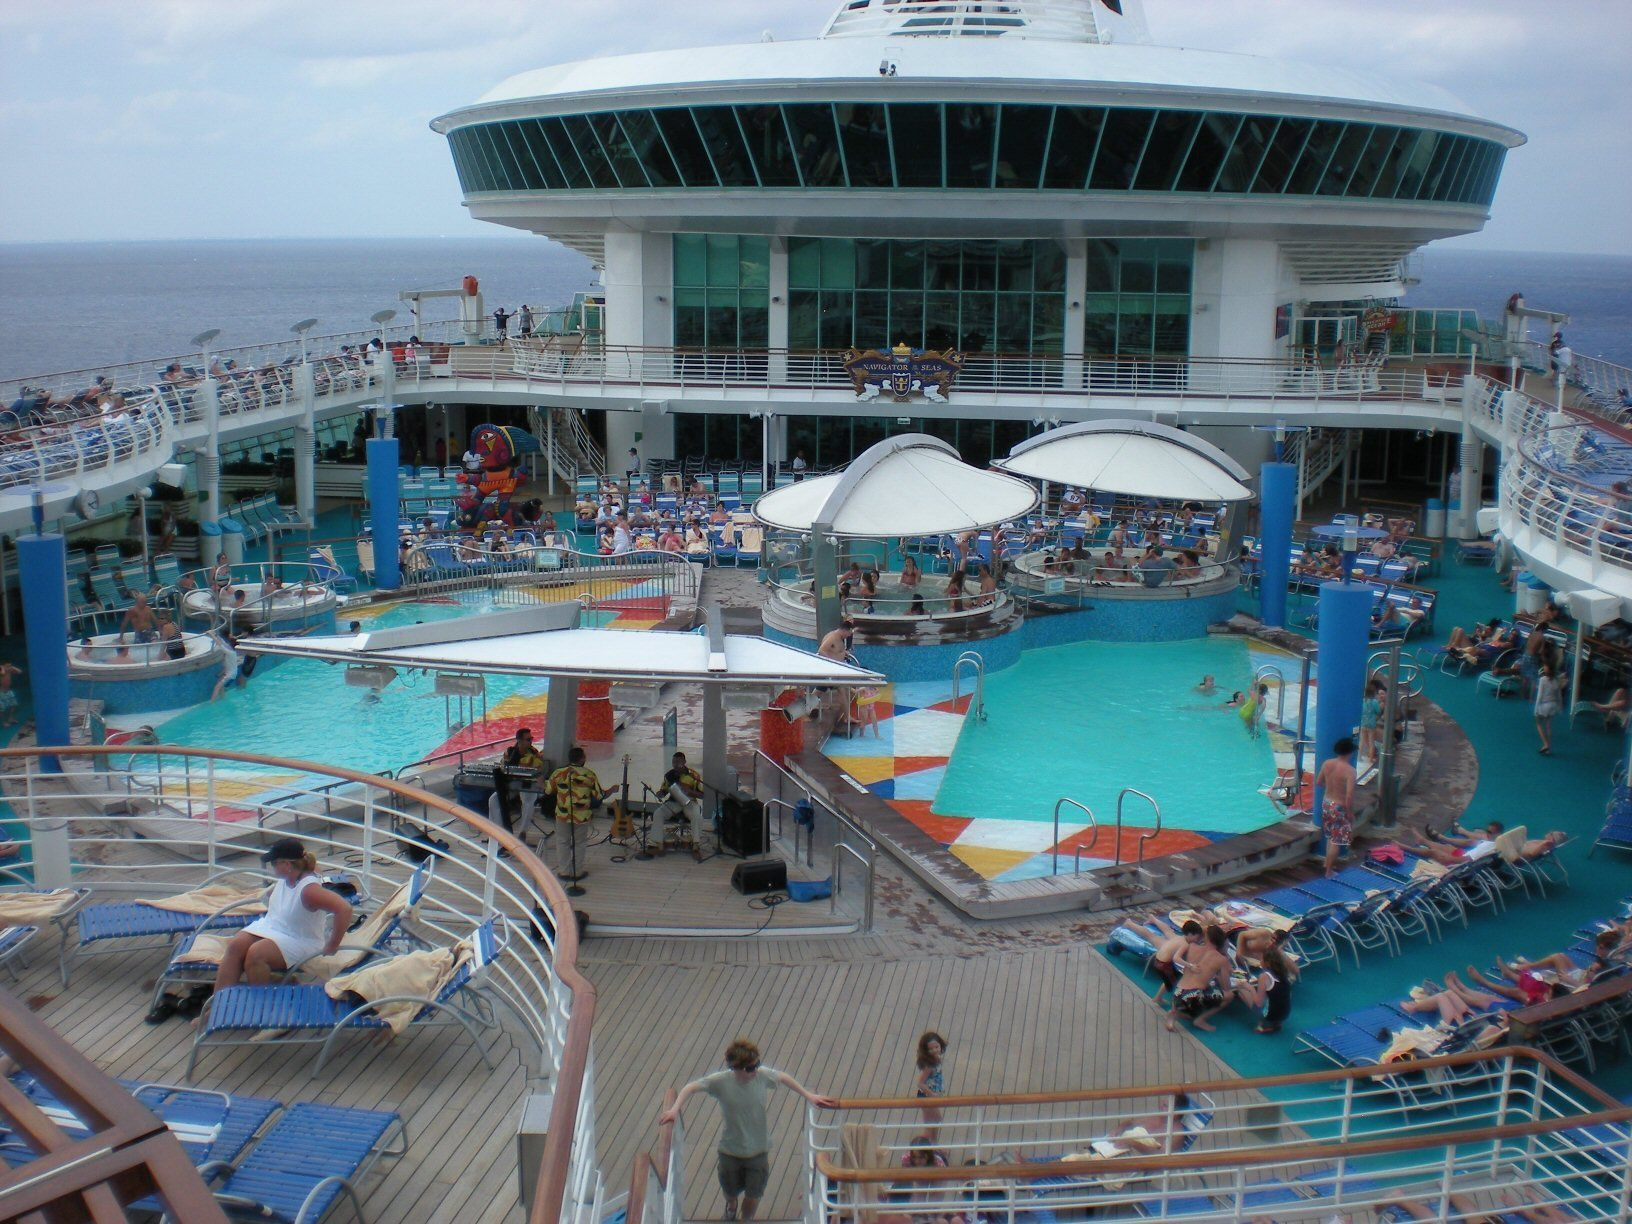 Royal Caribbean Cruises Cruises Bucket List Pinterest - Biggest cruise ships list